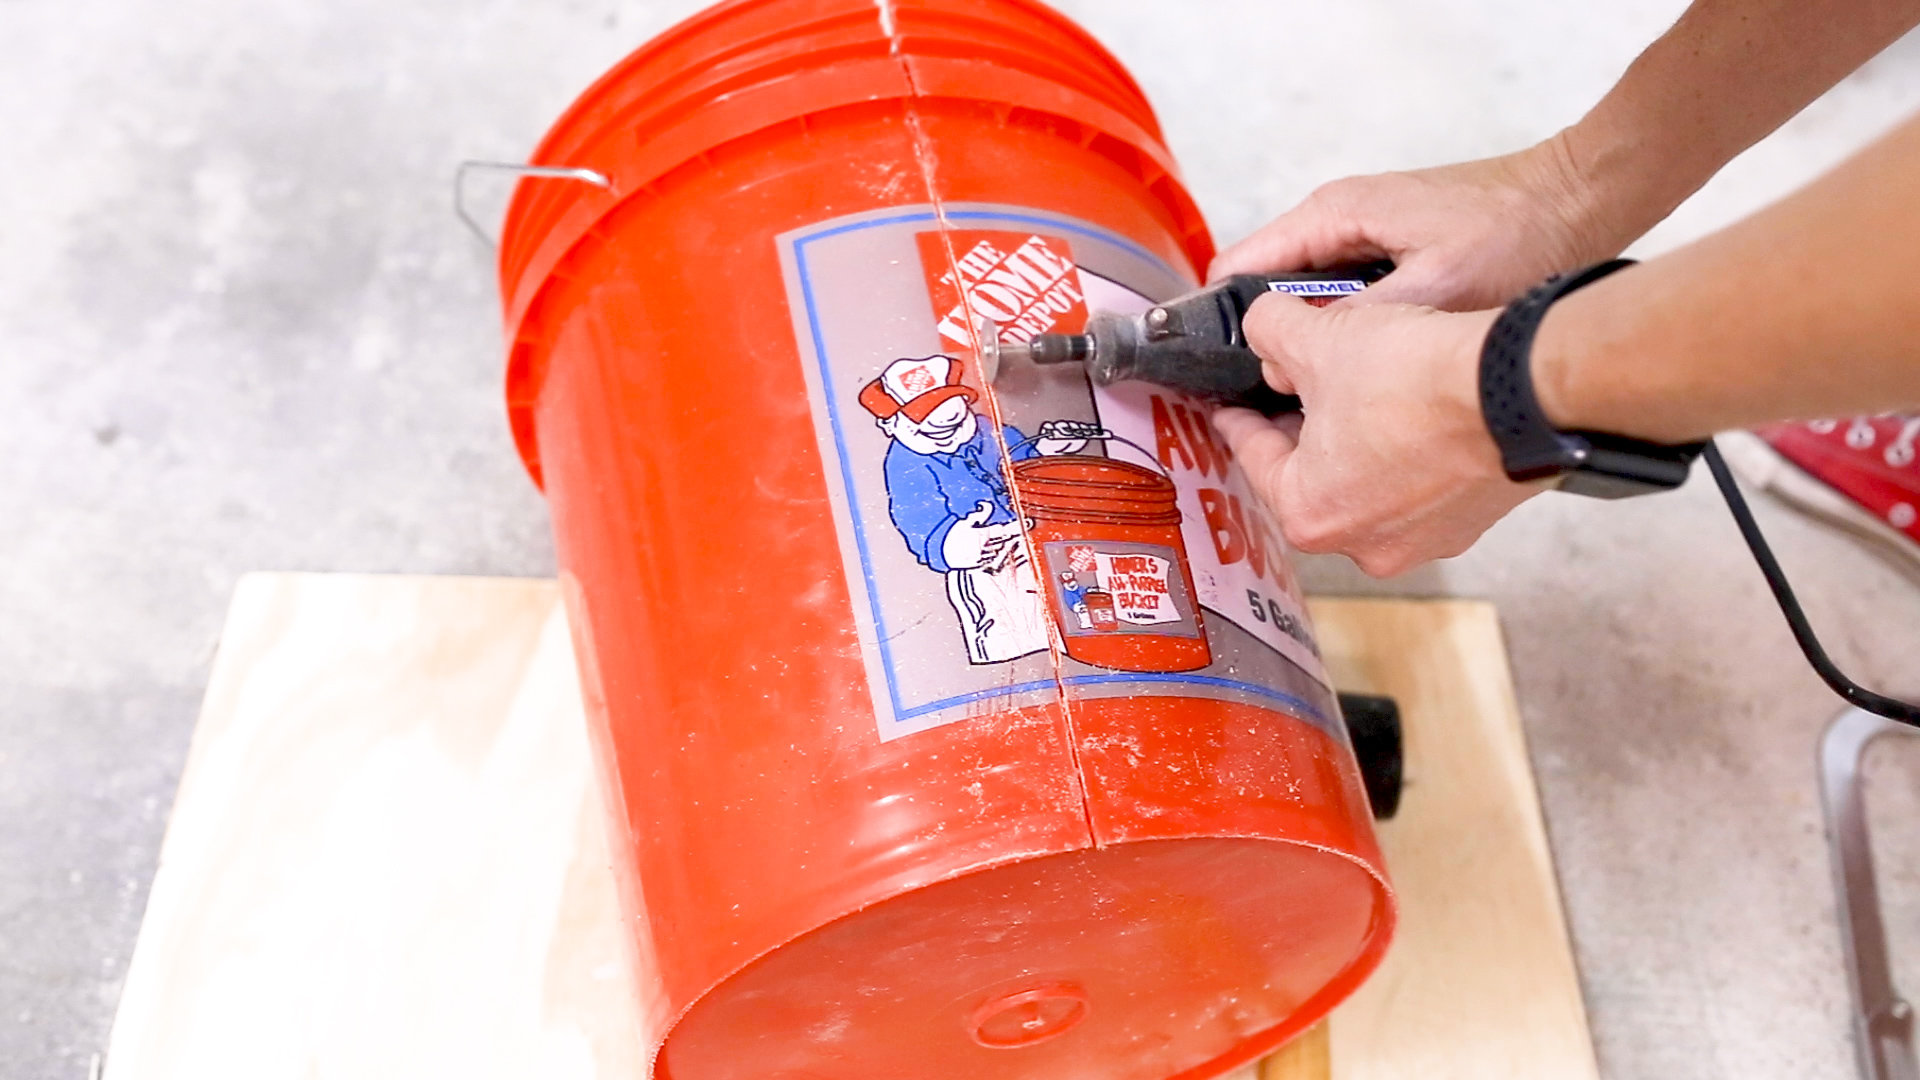 I then carefully made a cut down the side of the bucket with my  Dremel